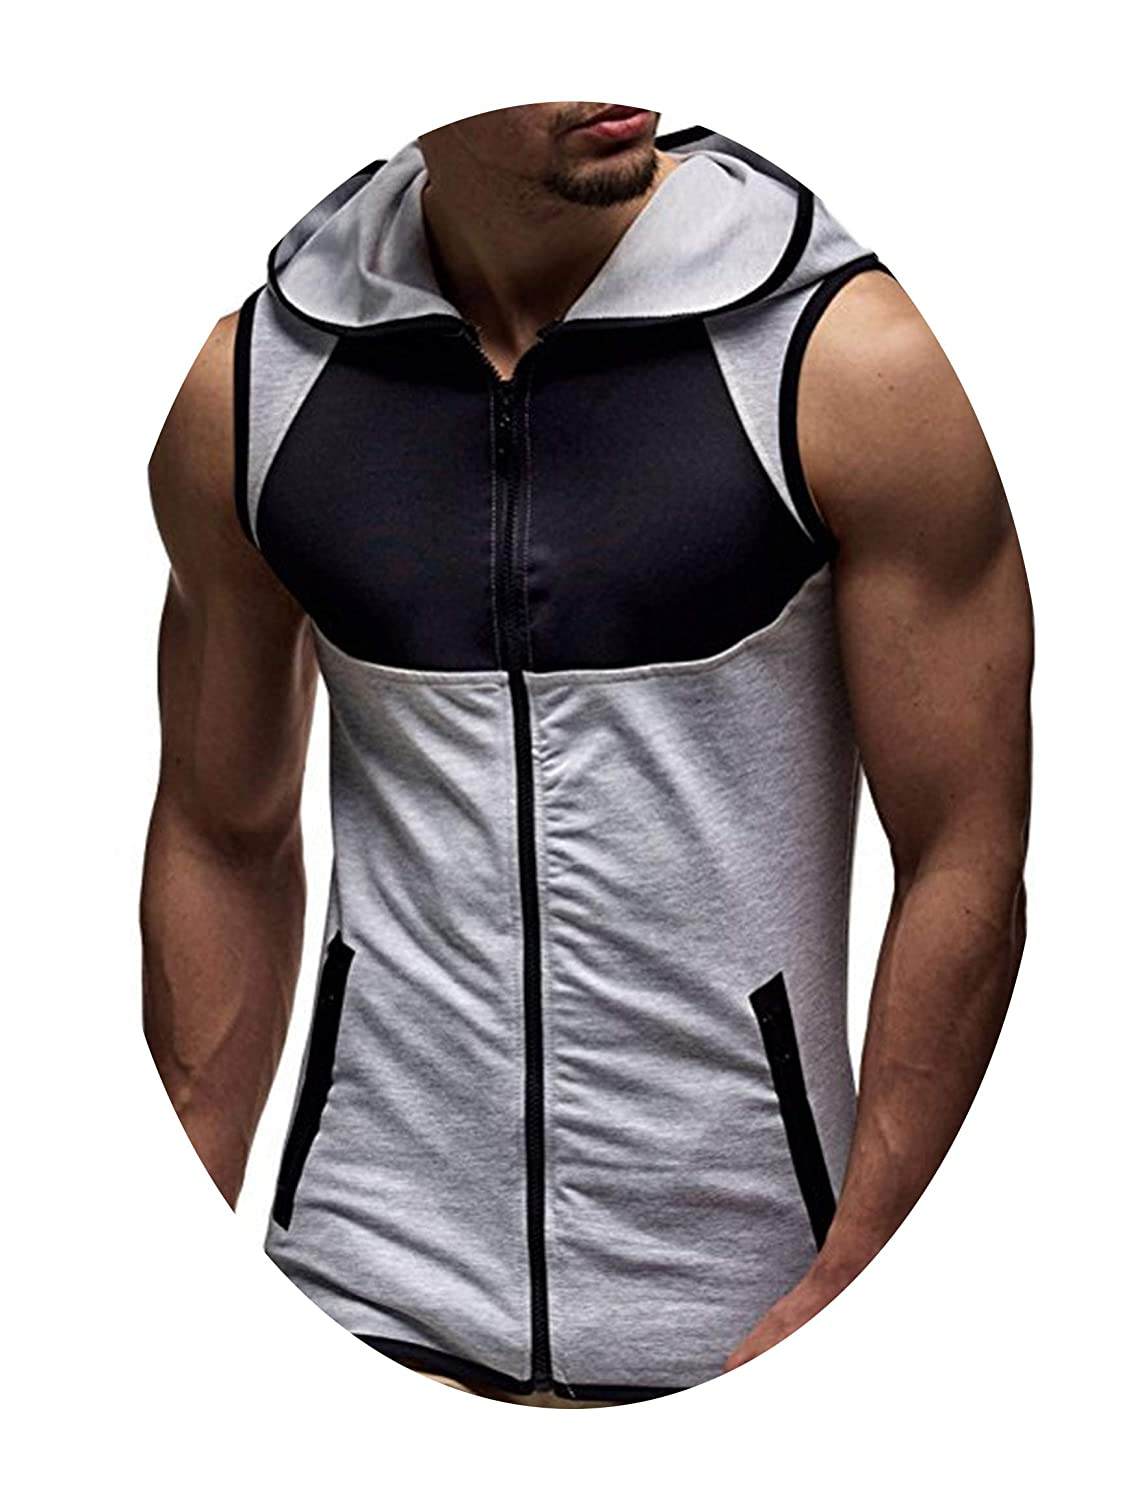 kongye Casual Cotton Men Sleeveless Tank Tops Fitness Hooded Camouflage Mens Vests Male Clothes